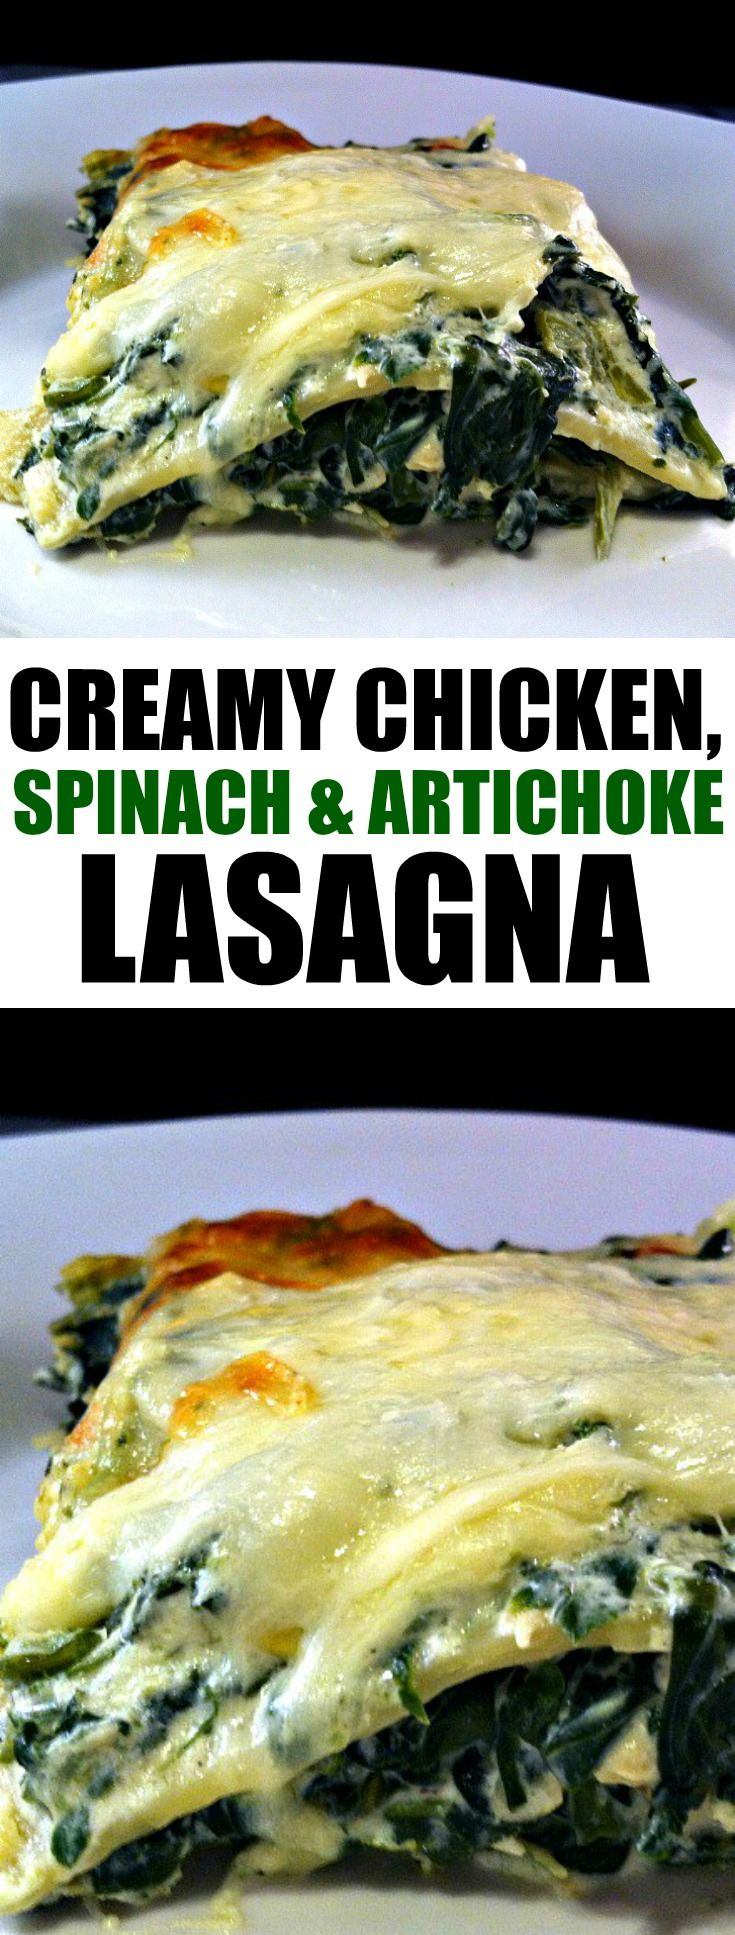 This Spinach, Artichoke & Chicken Lasagna is amazing and delicious! Make something a little different for dinner tonight!